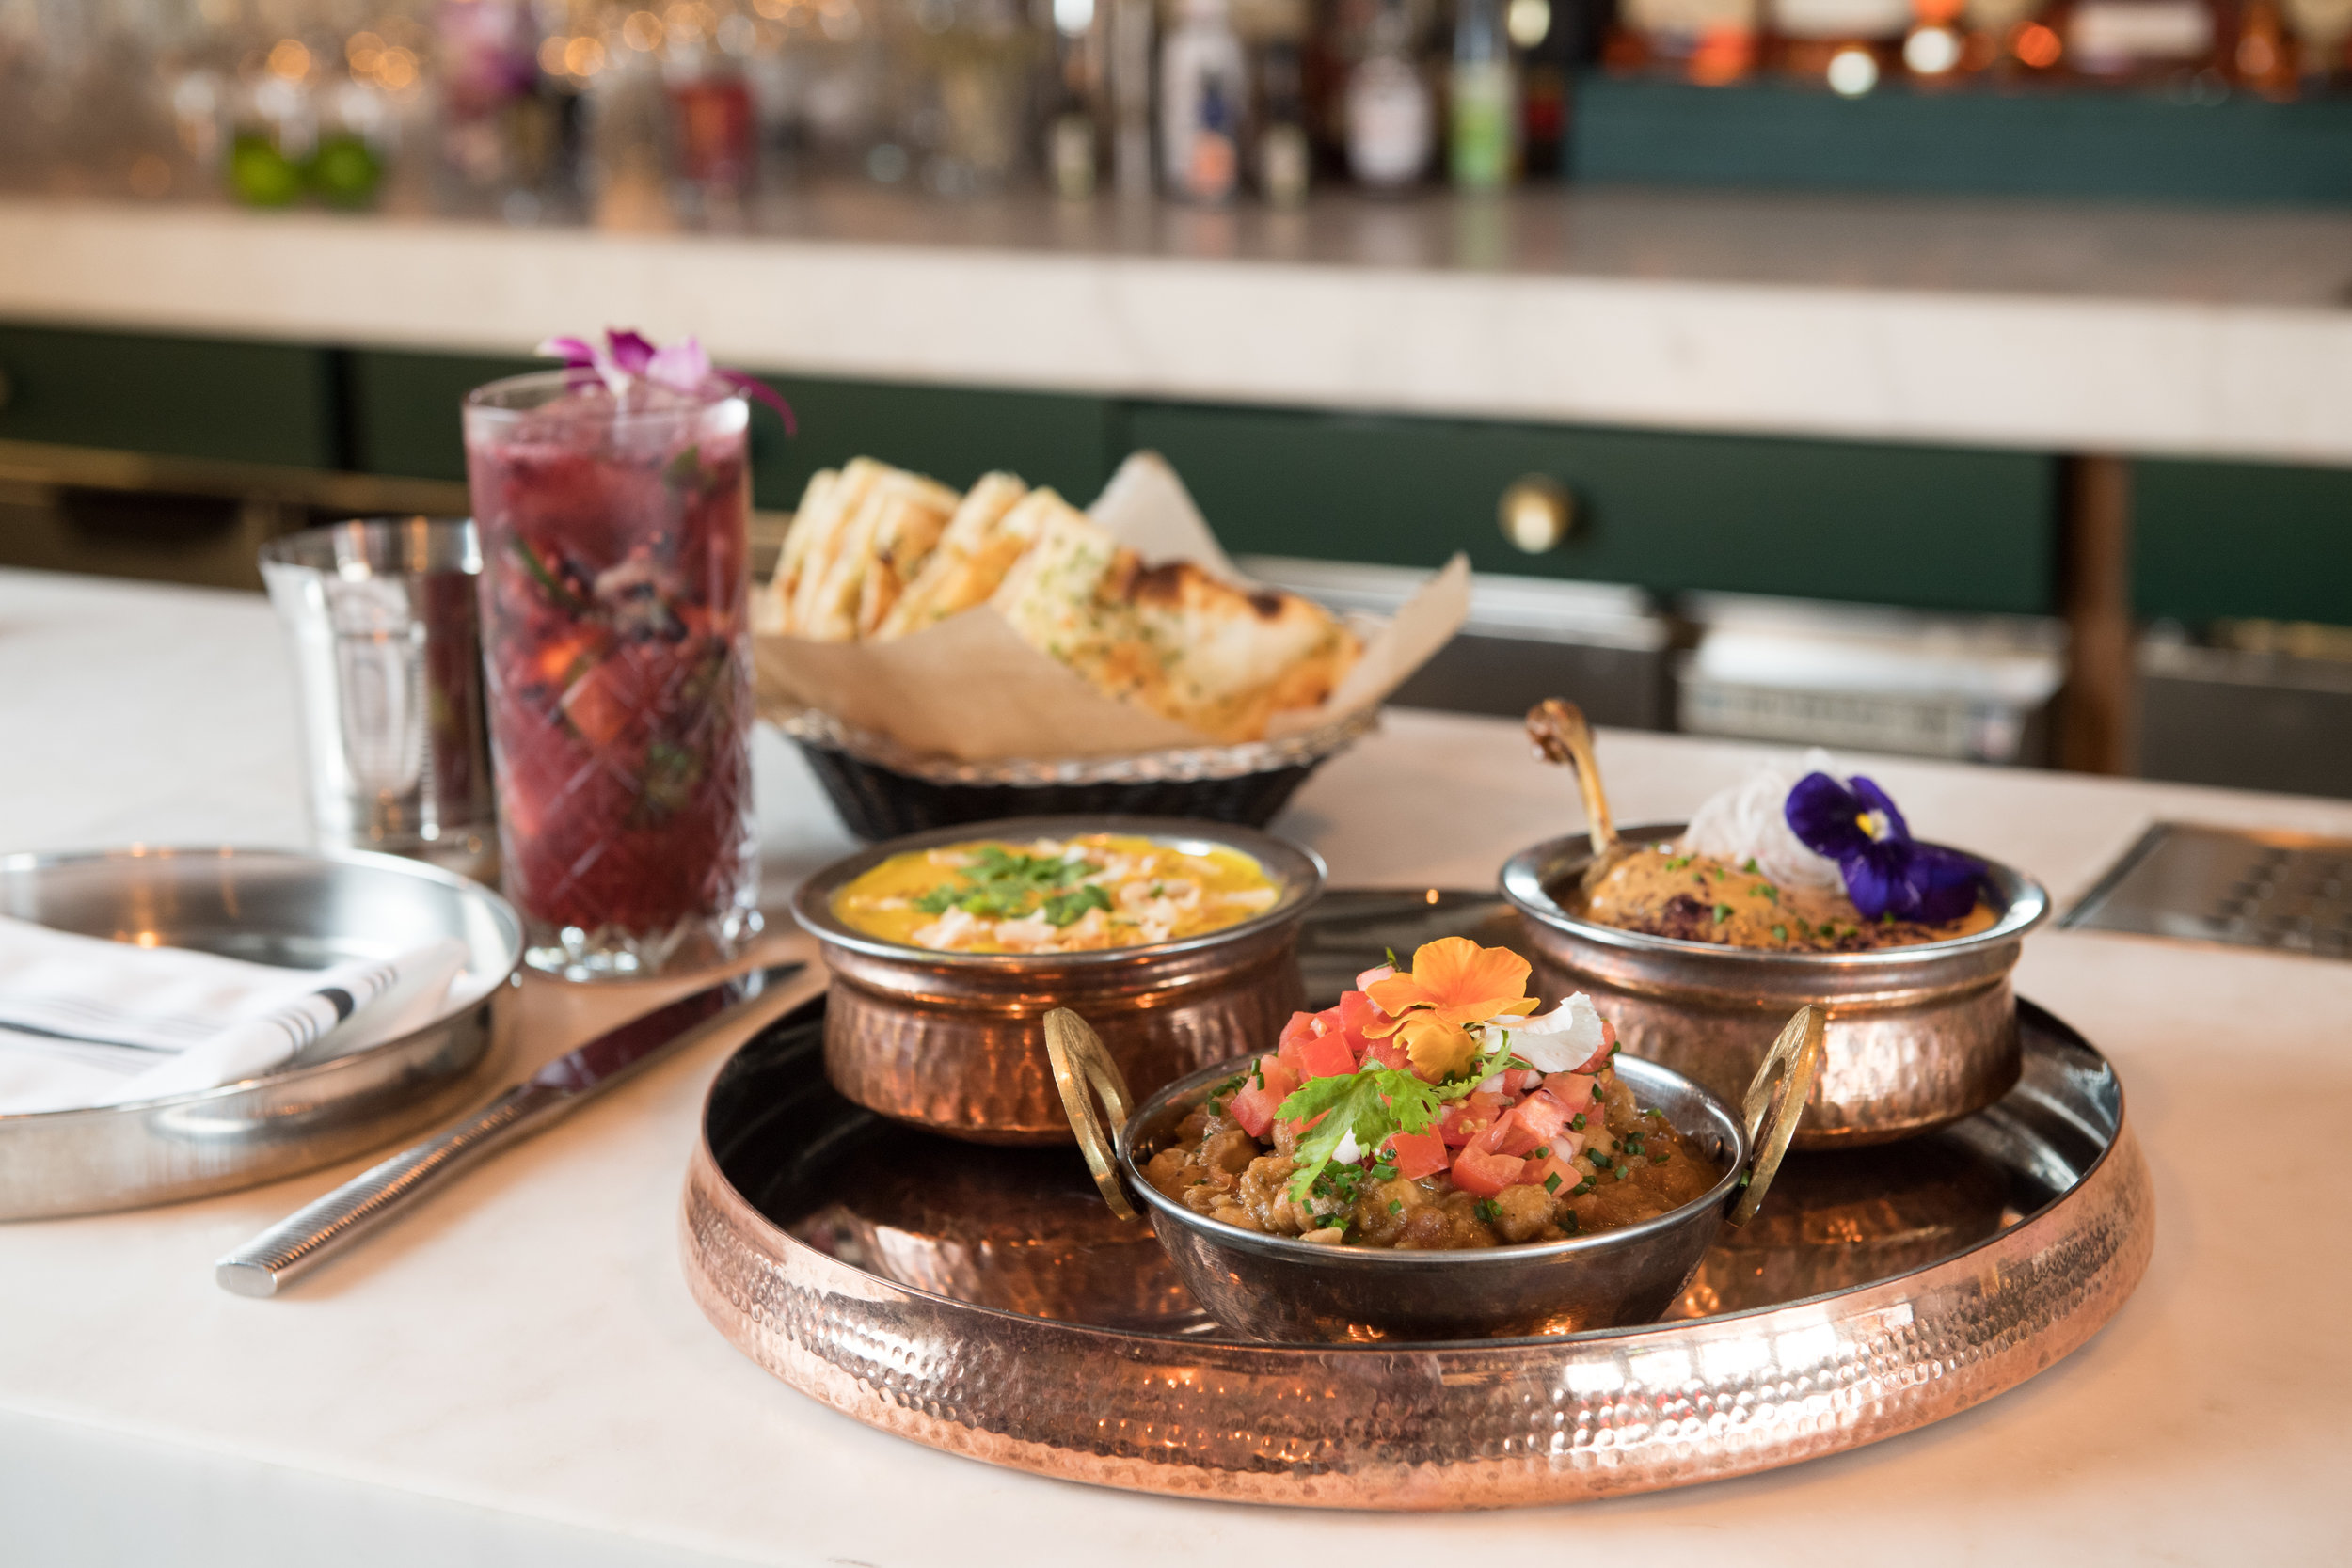 Recommended by Mr Alireza Niroomand, as the best Indian in New York.